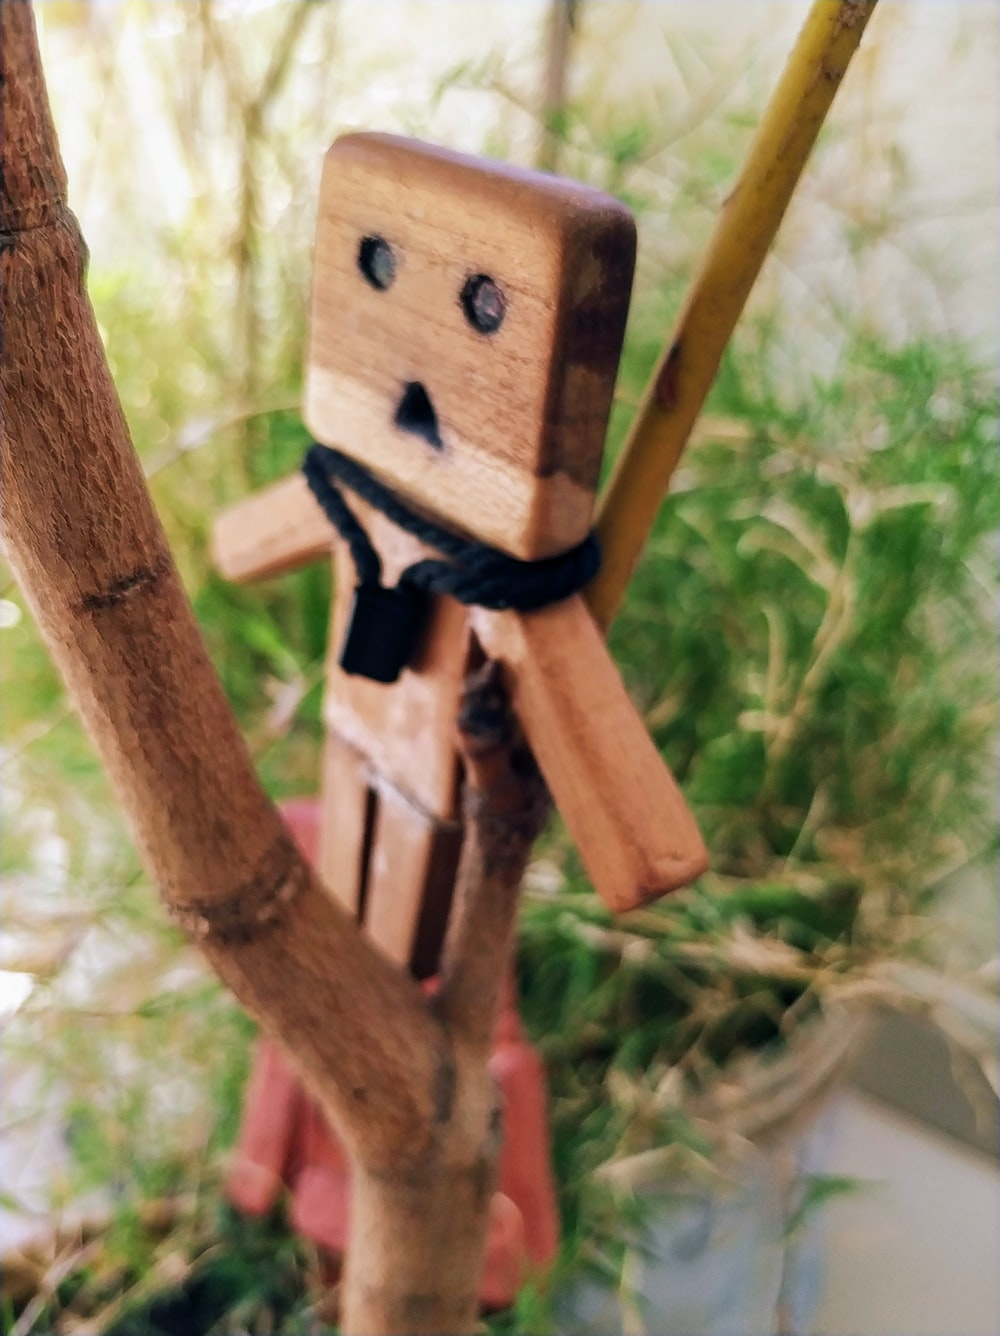 brown wooden character toy on wooden twig